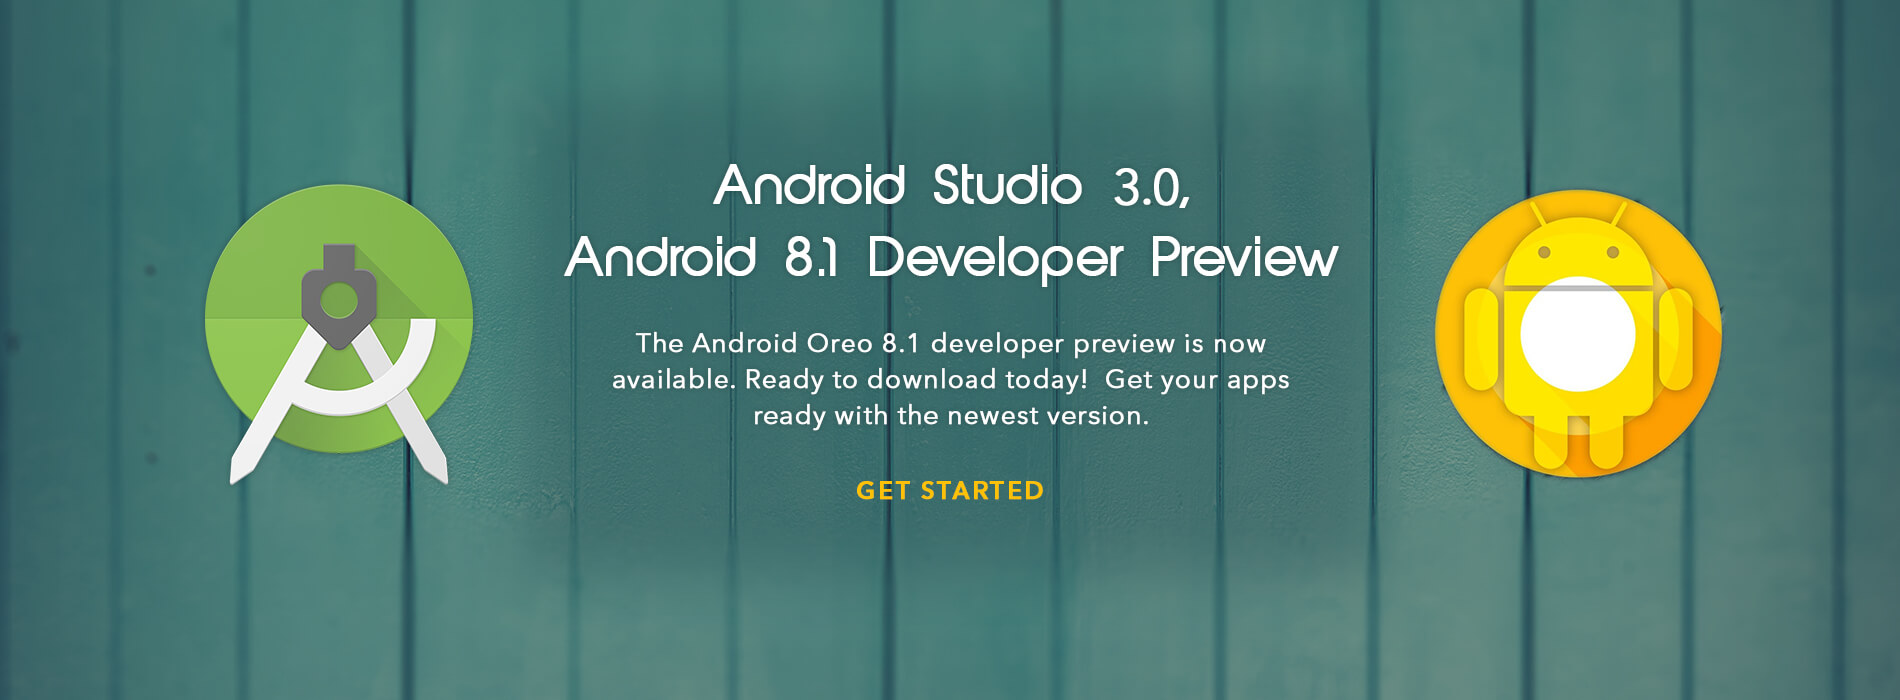 New features in Android Studio 3.0 and Android 8.1